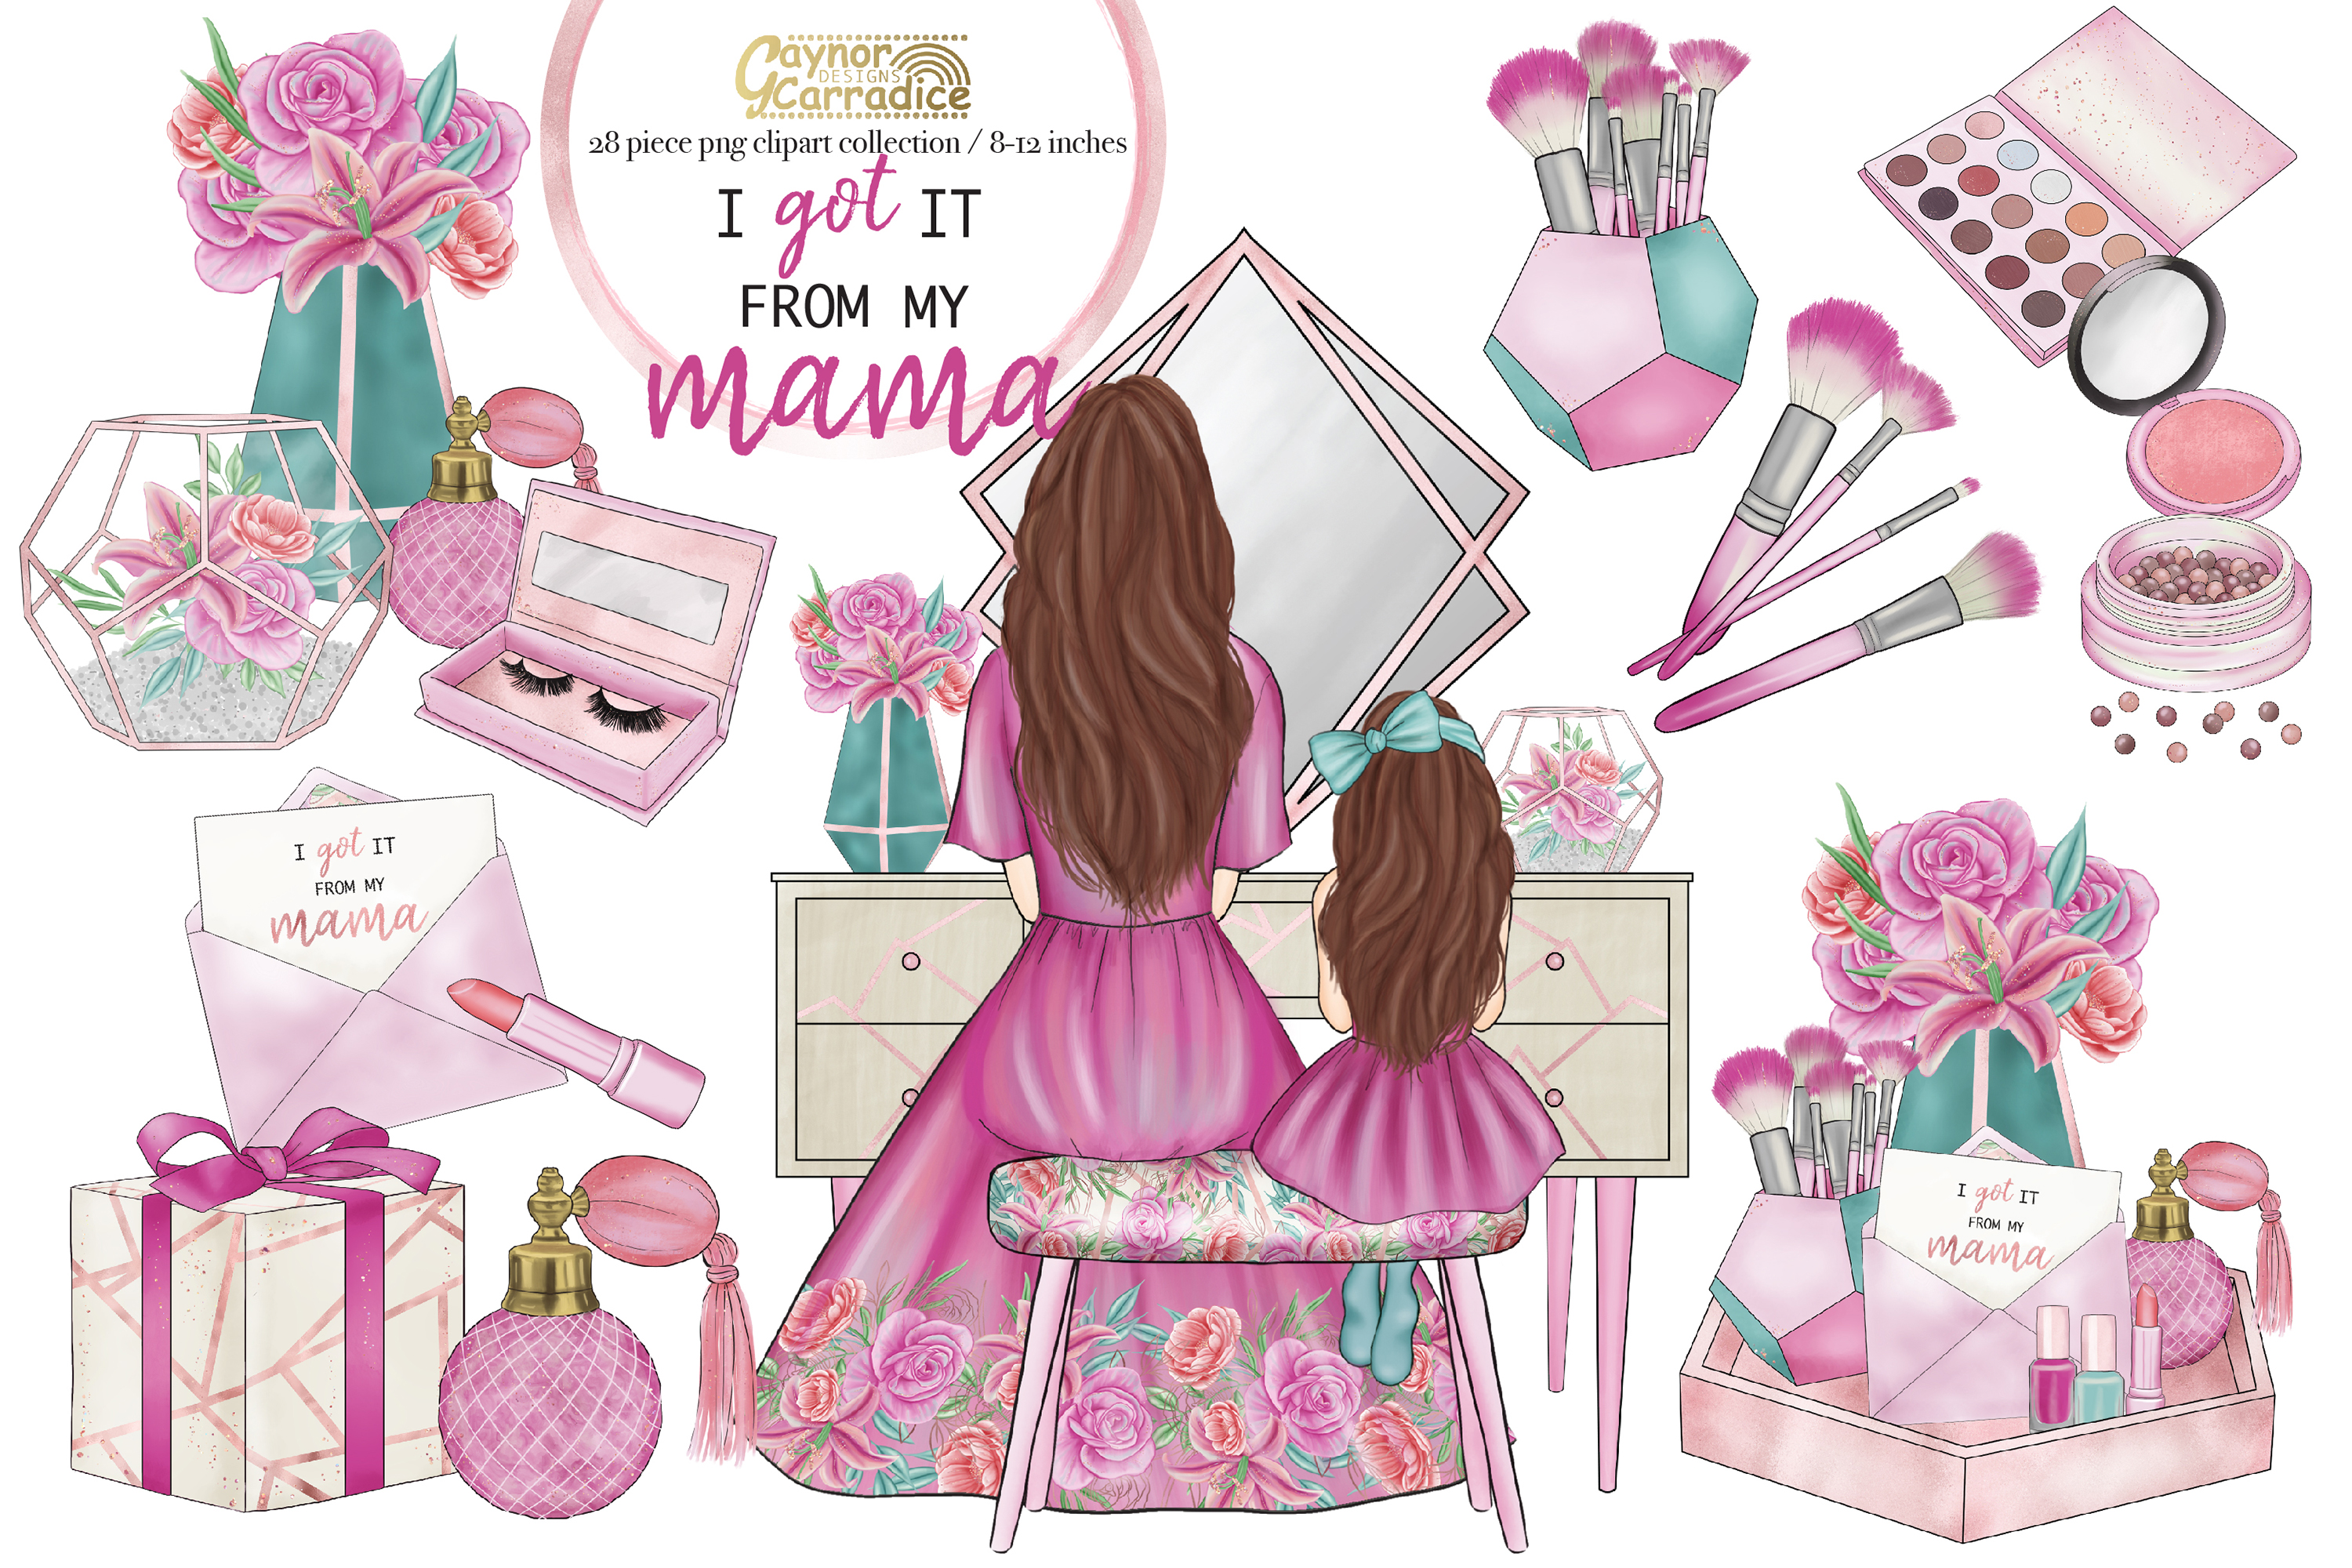 I got it from my mama - mothers day clipart collection example image 1